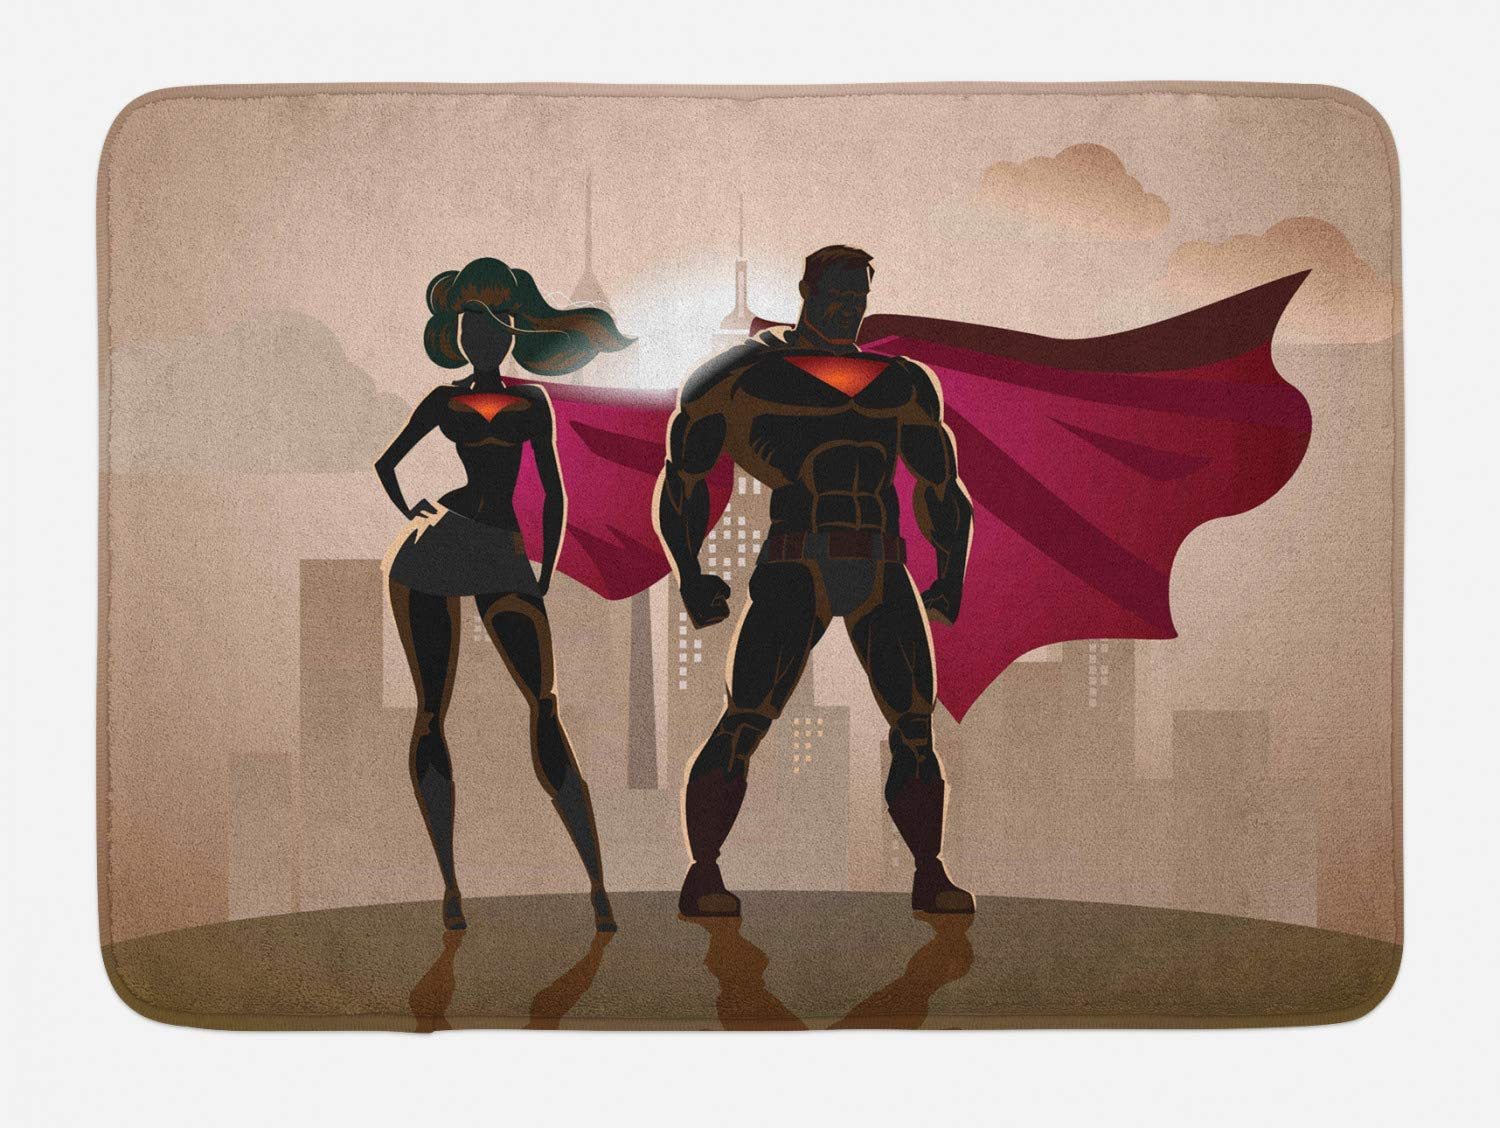 Ambesonne Superhero Bath Mat, Super Woman and Man Heroes in City Solving Crime Hot Couple in Costume, Plush Bathroom Decor Mat with Non Slip Backing, 29.5